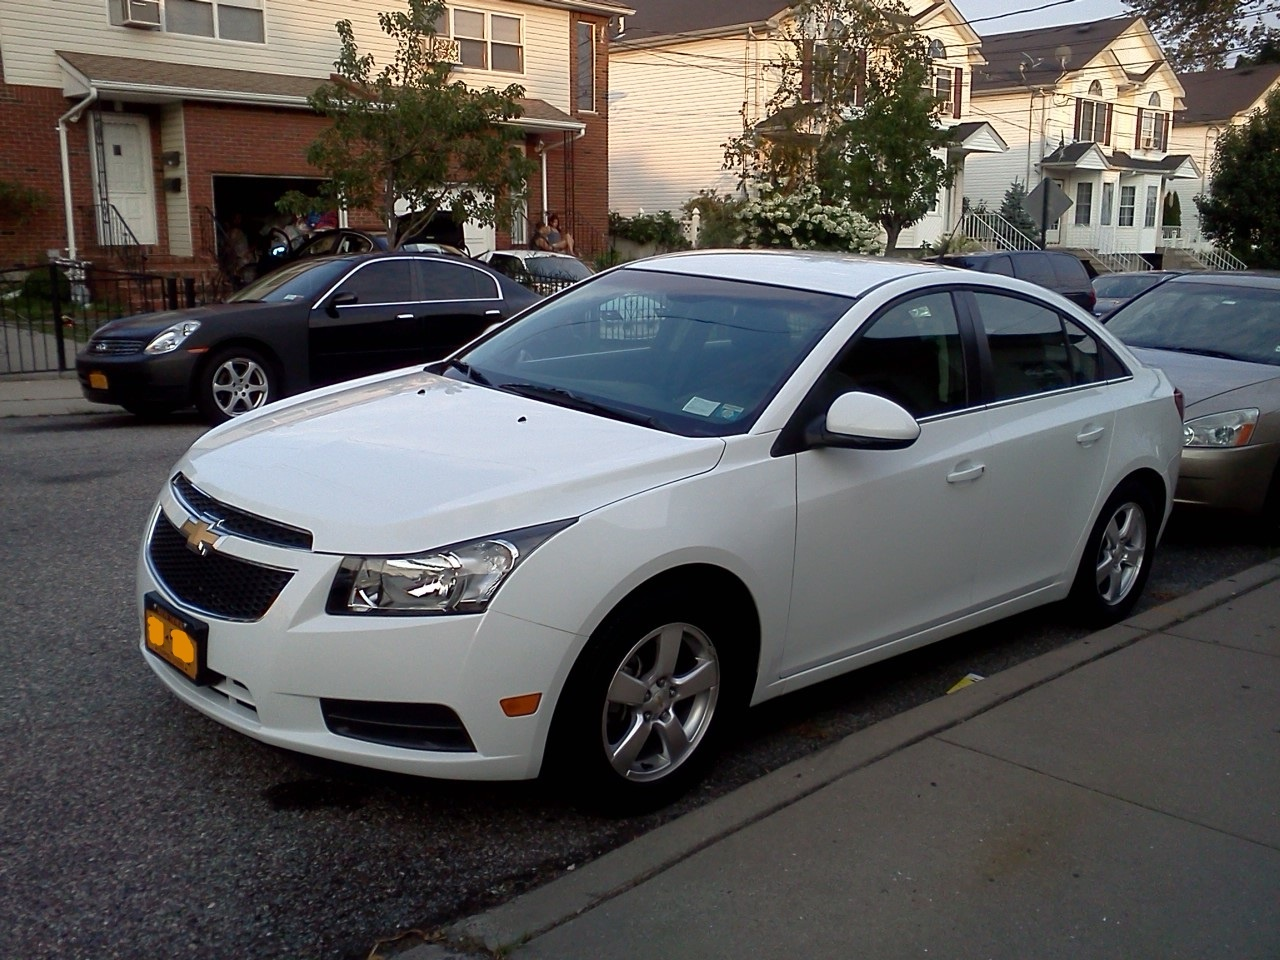 Cruze 2013 chevy cruze ltz for sale : Chevrolet Cruze Questions - Does anyone know how to use the Manual ...